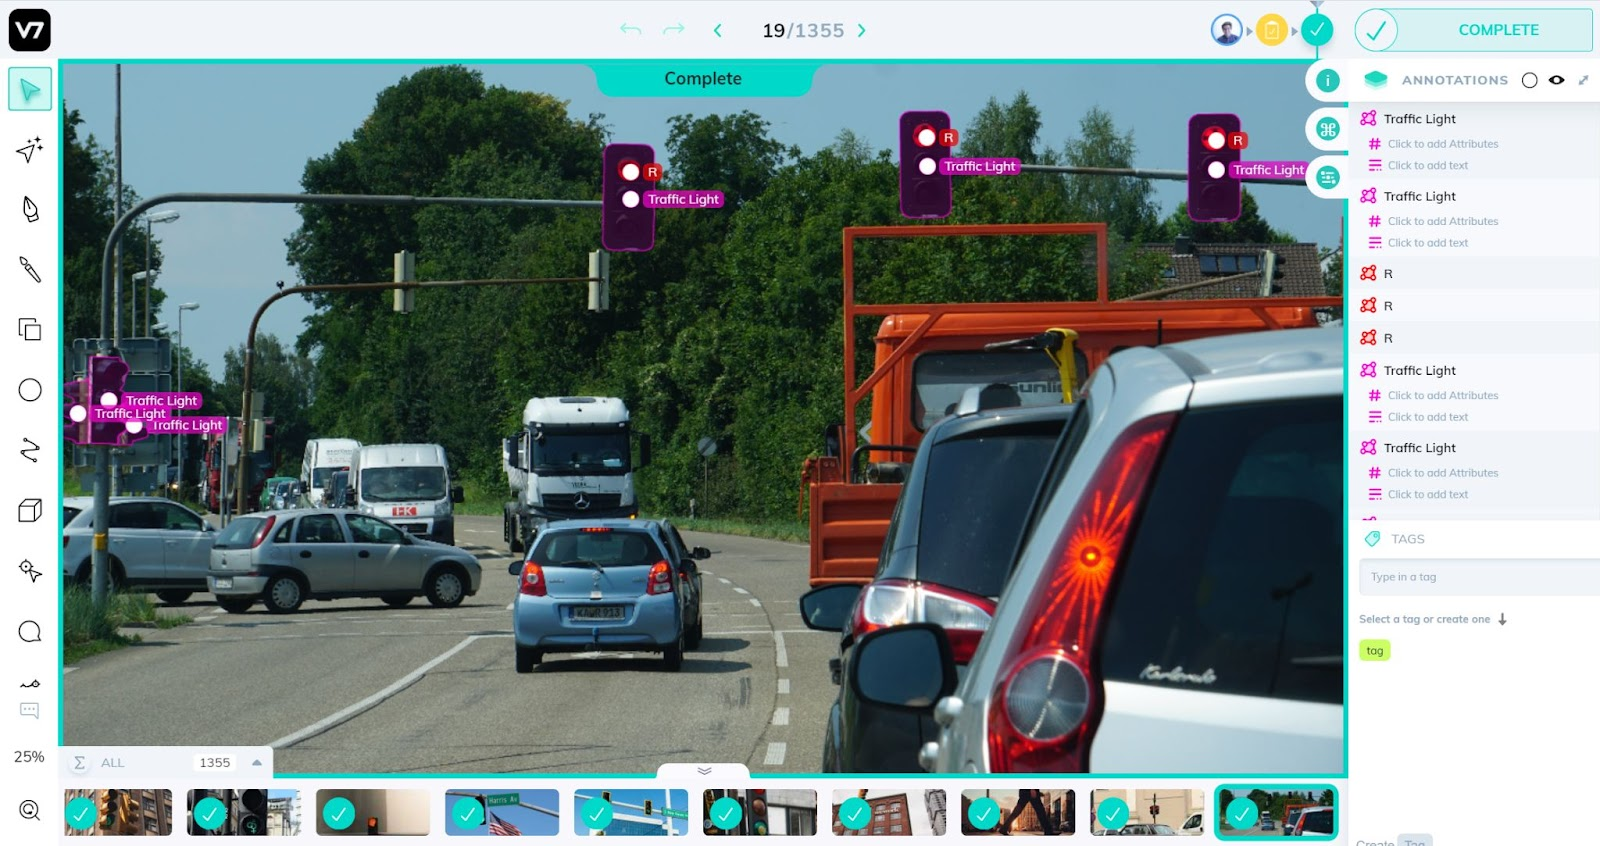 A street with cars and annotated traffic lights for traffic light detection in self driving cars.